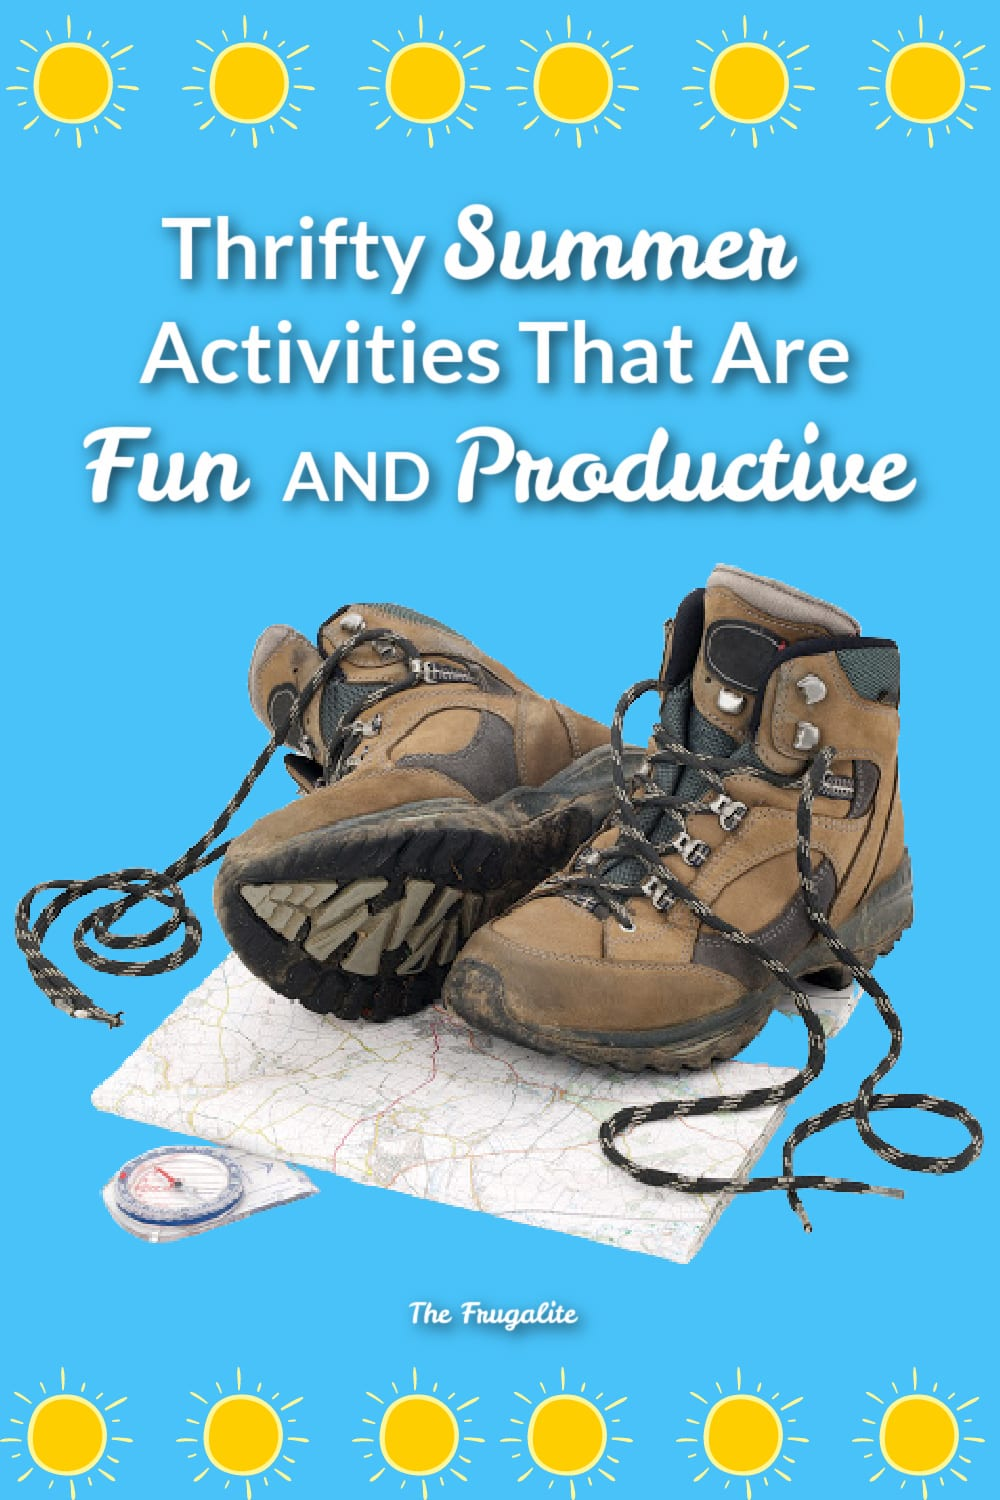 Thrifty Summer Activities That Are Fun AND Productive